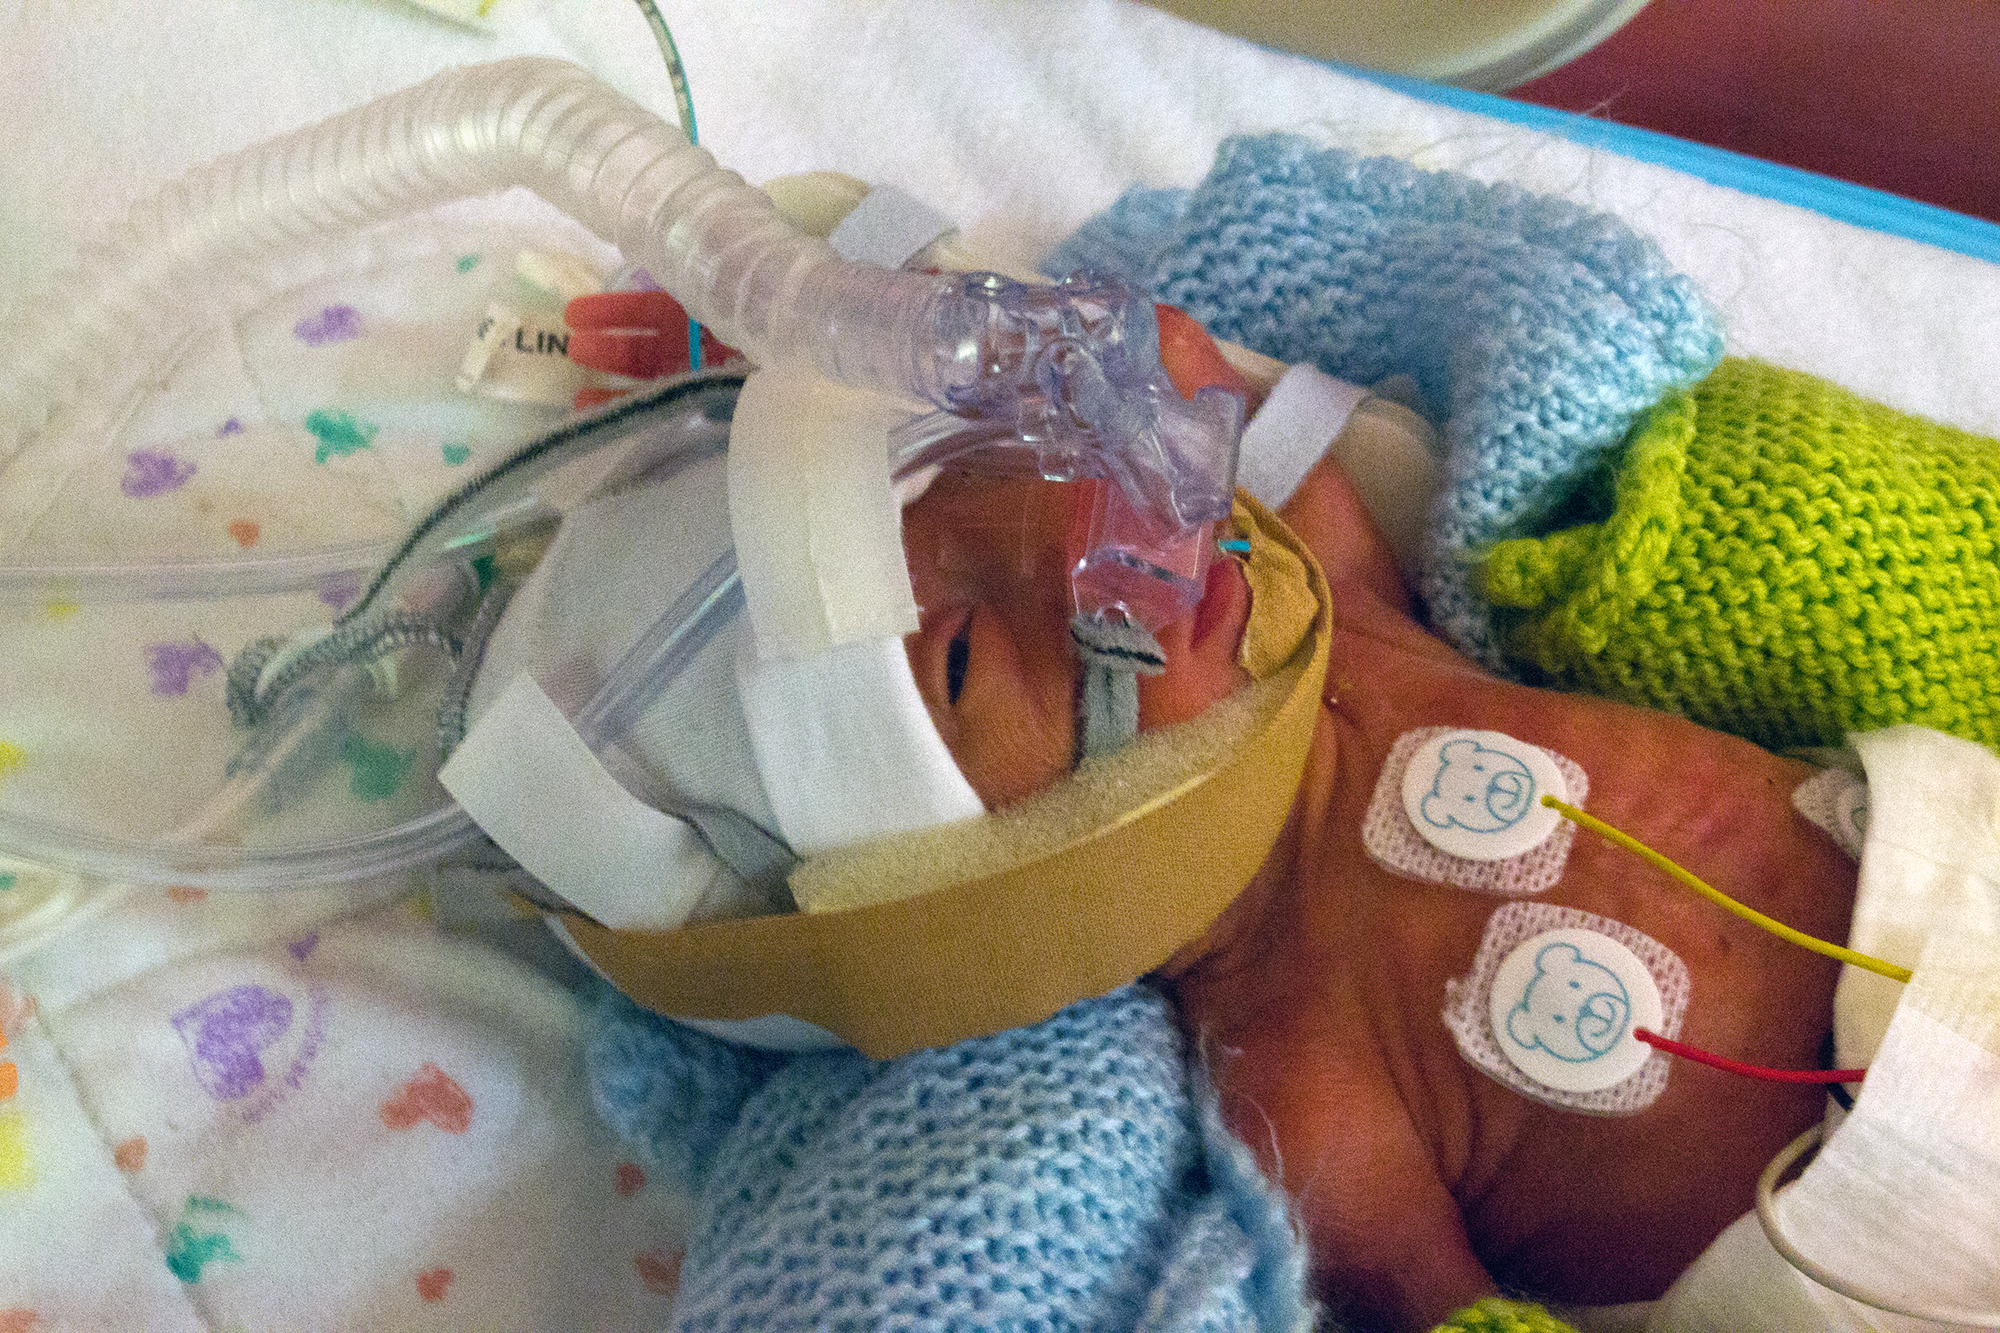 Tiny baby in an incubator with breathing apparatus on.